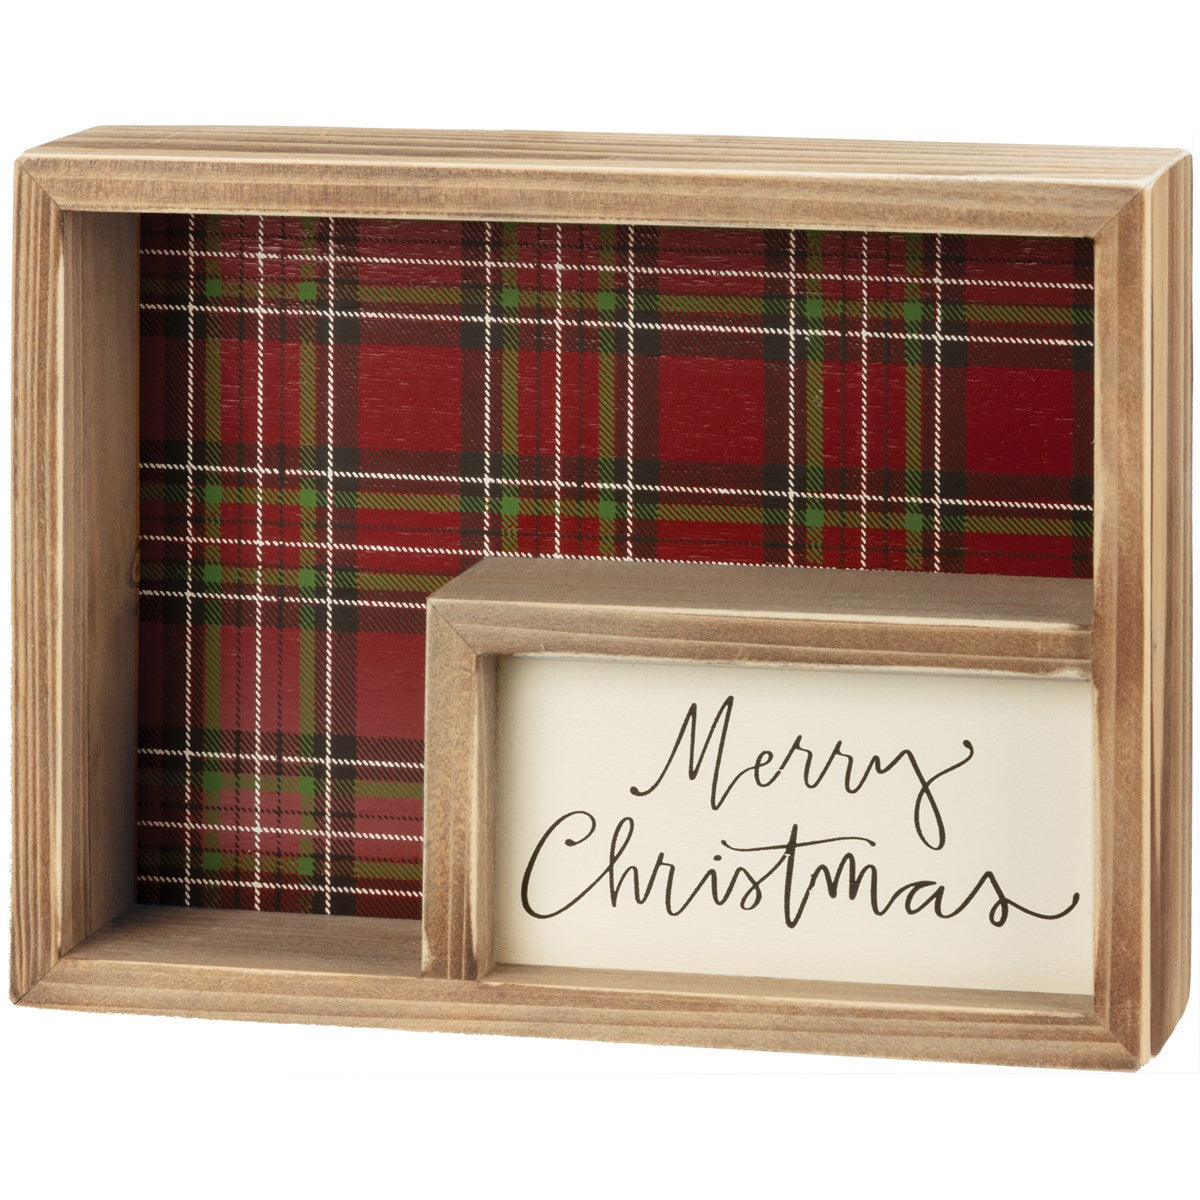 Merry Christmas Inset Wooden Box Sign